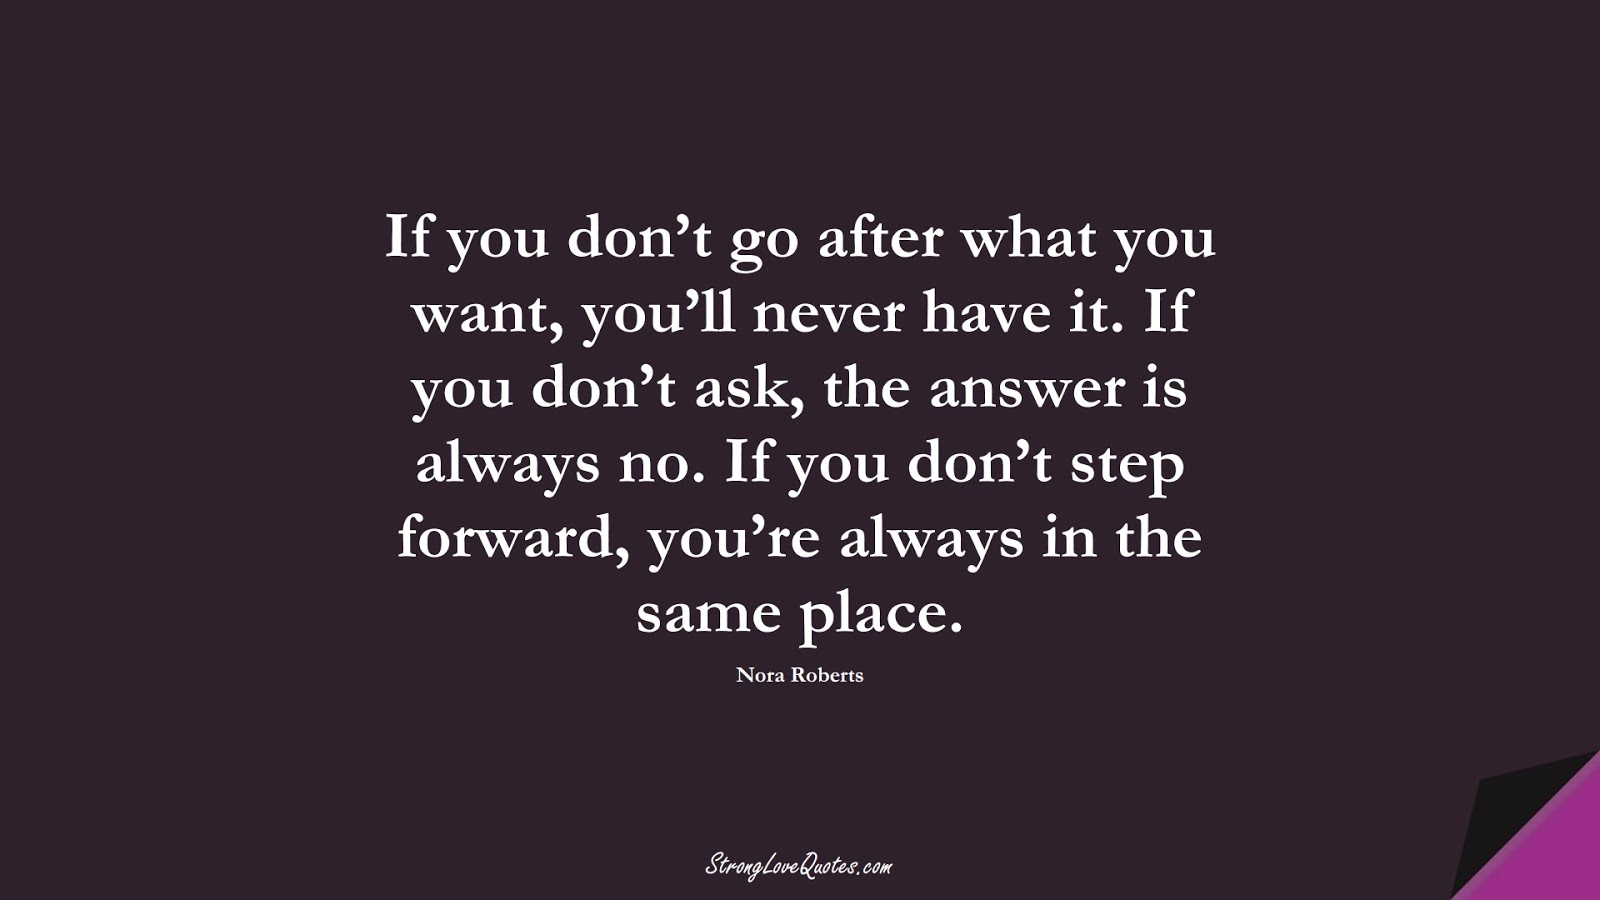 If you don't go after what you want, you'll never have it. If you don't ask, the answer is always no. If you don't step forward, you're always in the same place. (Nora Roberts);  #EducationQuotes